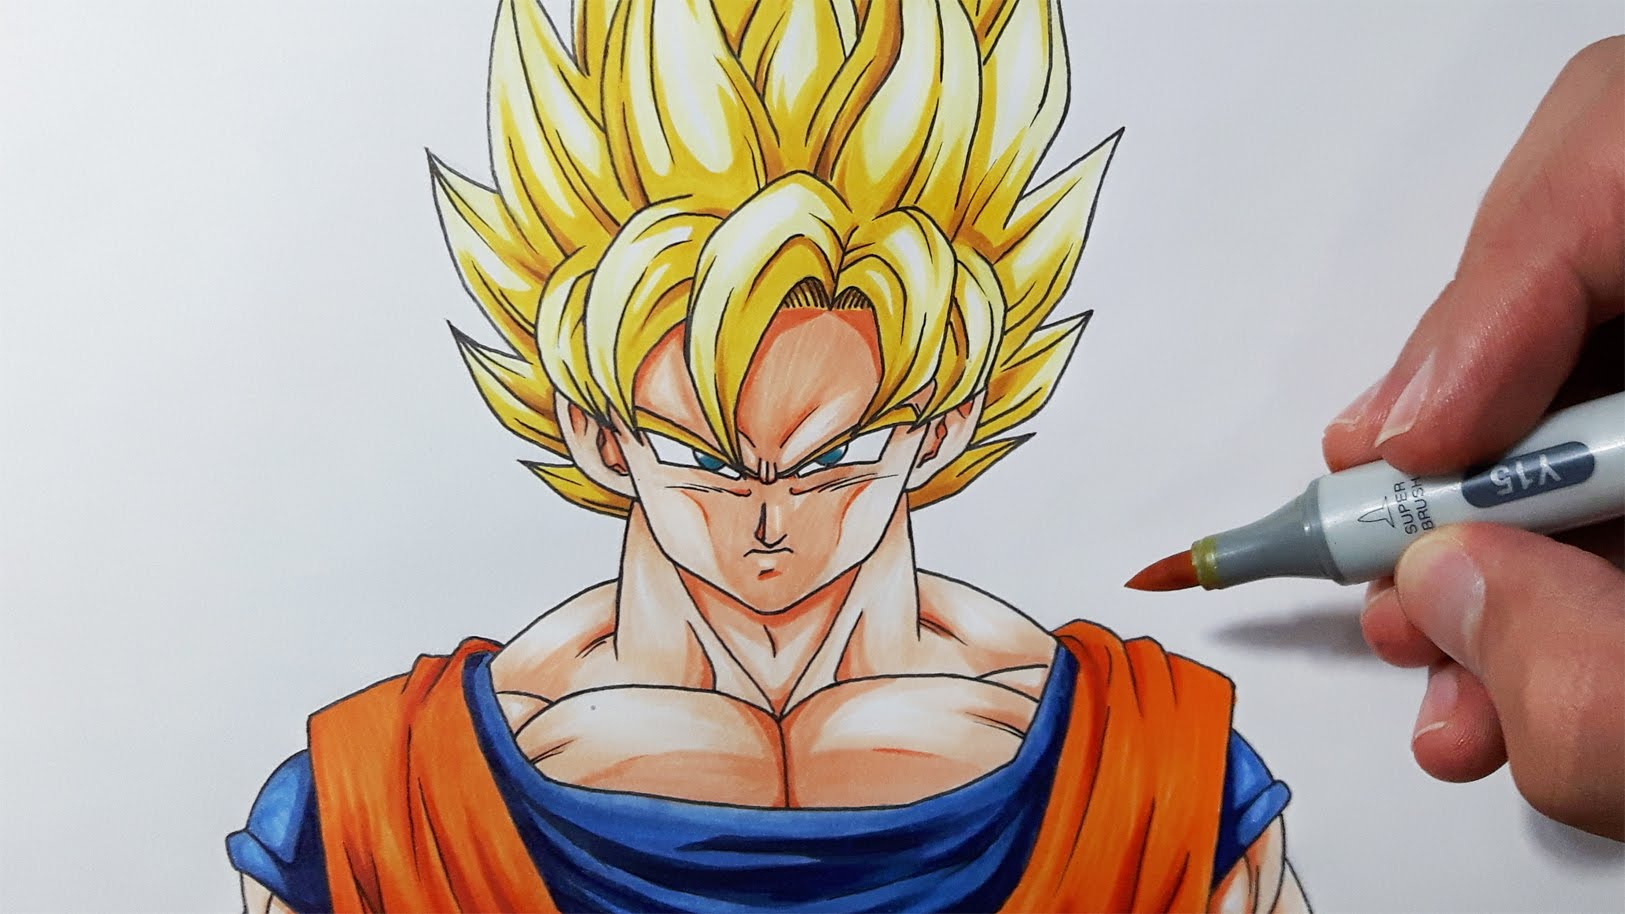 Ssj Goku Drawing At Getdrawings Com Free For Personal Use